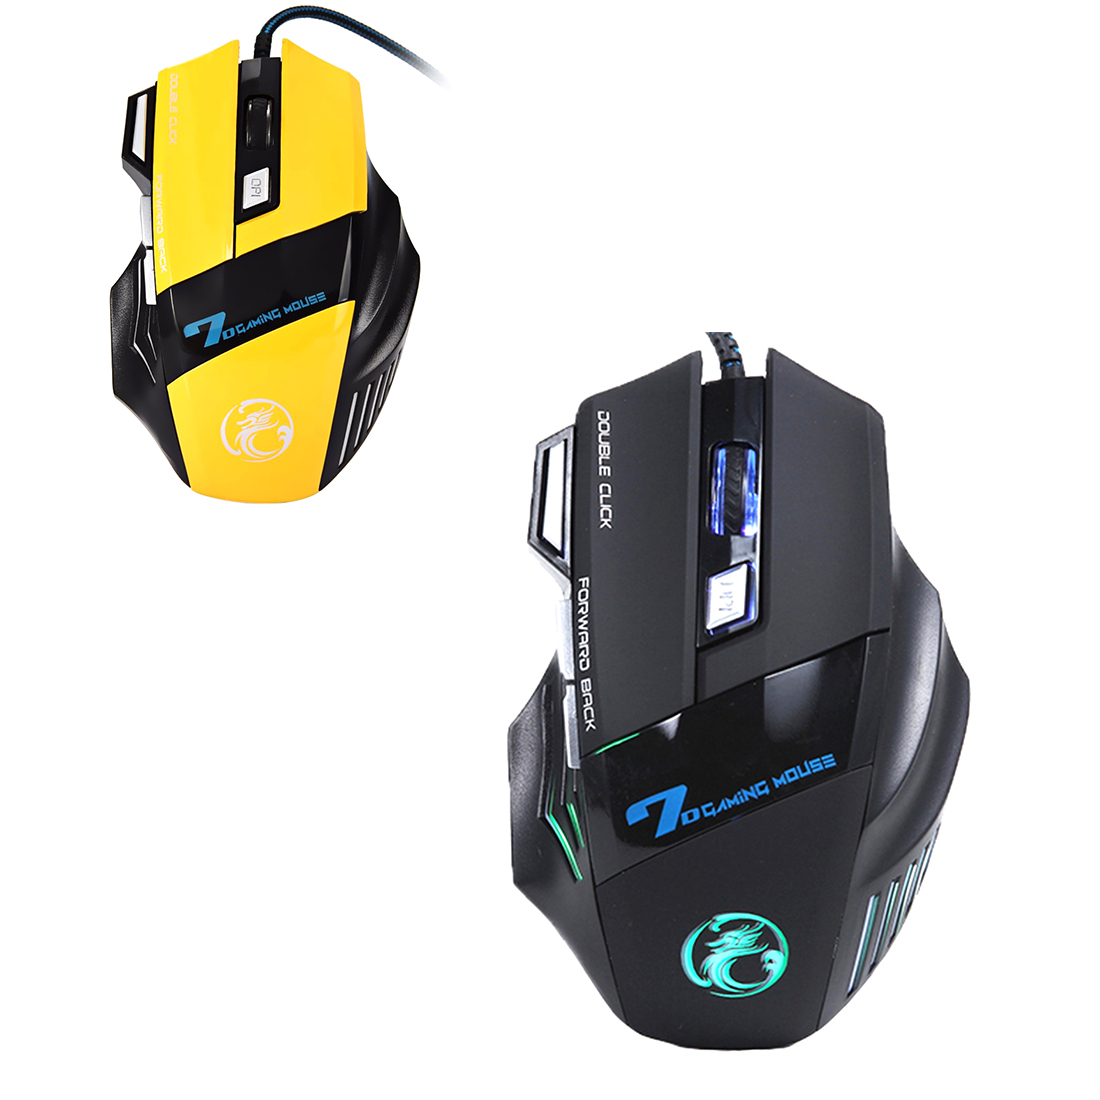 Etmakit  Professional Wired Gaming Mouse 7 Button 5500 DPI LED Optical USB Gamer Computer Mouse Mice Cable Mouse High Quality X7